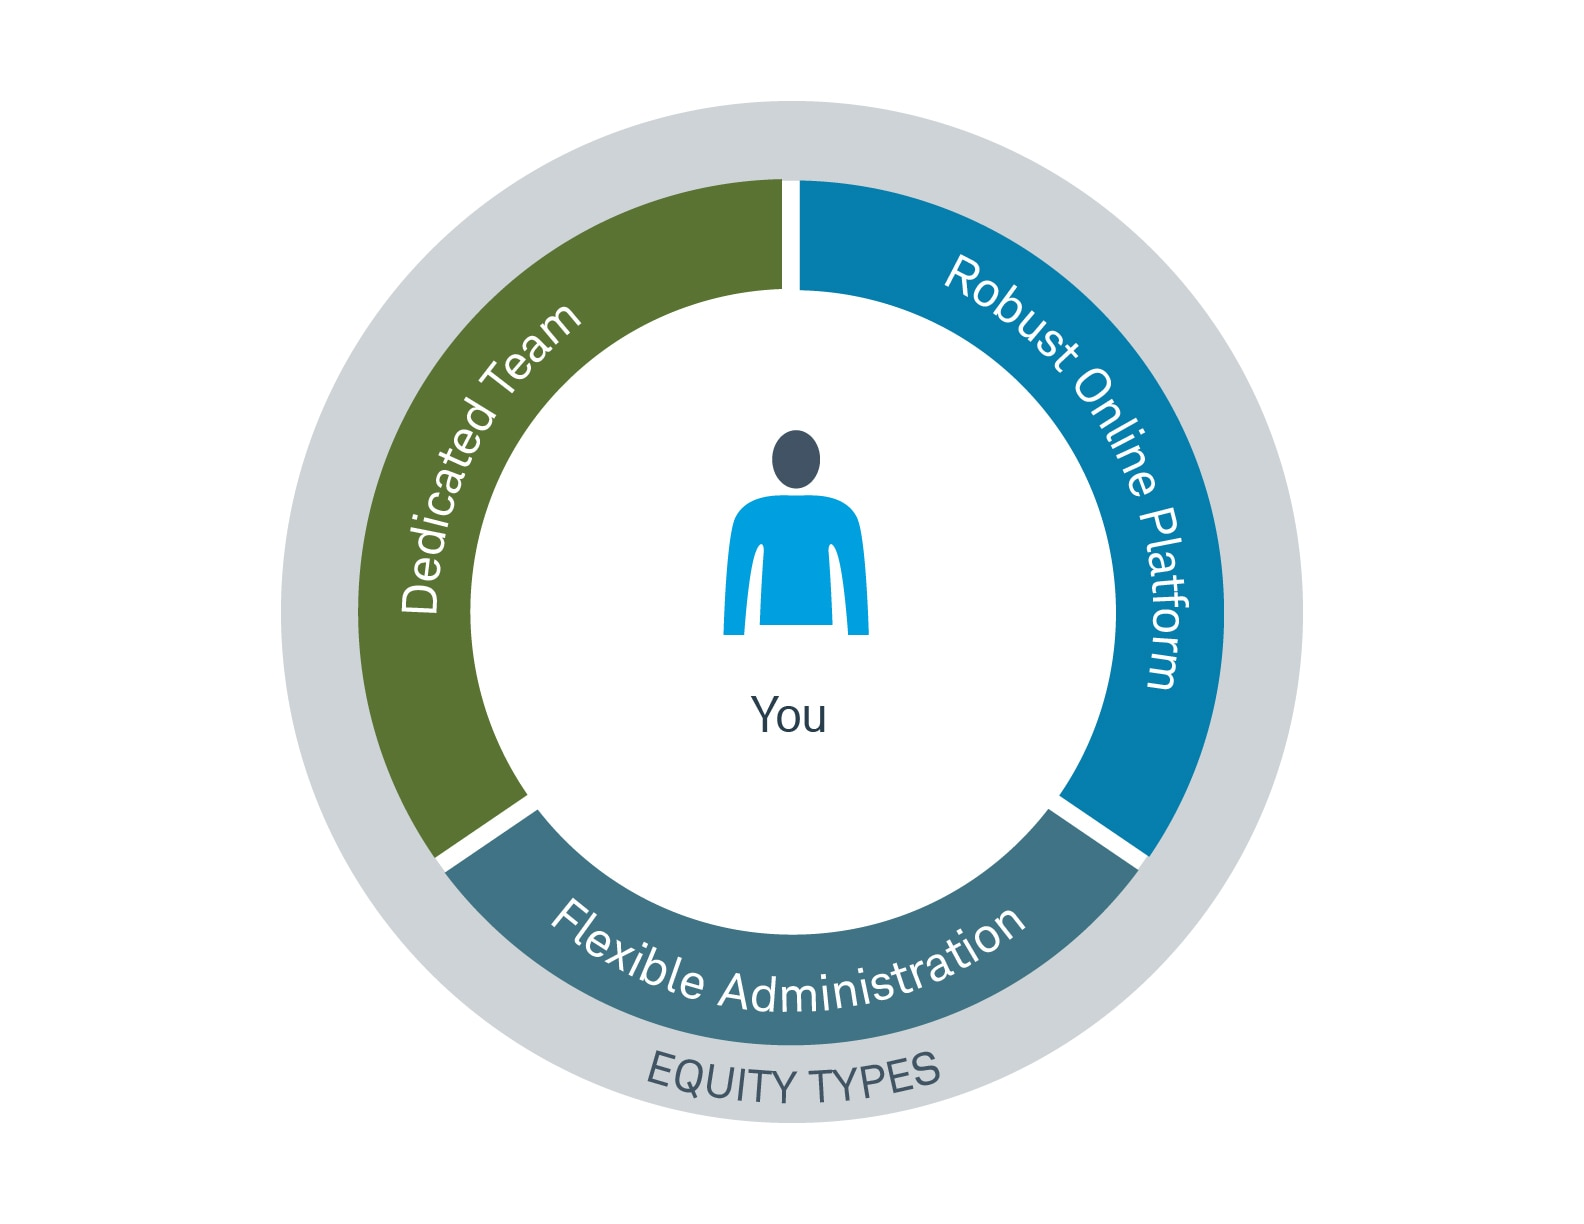 """Chart showing """"You"""" surrounded by """"Dedicated Team,"""" """"Robust Online Platform,"""" and """"Flexibility Administration"""". The whole circle is surrounded by """"Equity Types"""""""